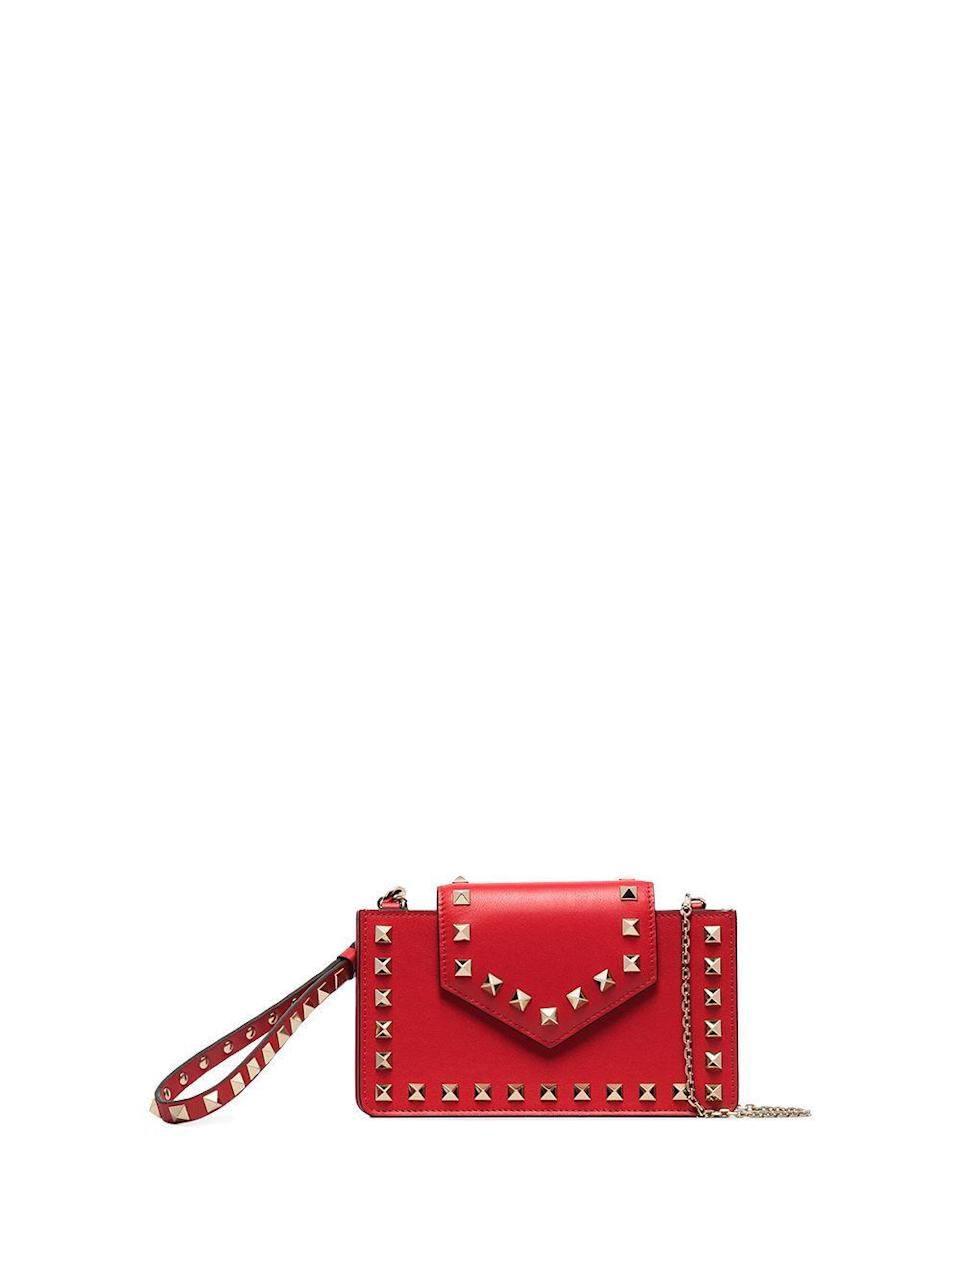 "<p><strong>Valentino Garavani</strong></p><p>farfetch.com</p><p><strong>$750.00</strong></p><p><a href=""https://go.redirectingat.com?id=74968X1596630&url=https%3A%2F%2Fwww.farfetch.com%2Fshopping%2Fwomen%2Fvalentino-garavani-rockstud-embellished-clutch-bag-item-15159202.aspx&sref=https%3A%2F%2Fwww.harpersbazaar.com%2Ffashion%2Ftrends%2Fg4475%2Ftech-gifts-for-women%2F"" rel=""nofollow noopener"" target=""_blank"" data-ylk=""slk:Shop Now"" class=""link rapid-noclick-resp"">Shop Now</a></p><p>A phone case and designer wallet all in one makes for an ideal luxury gift.</p>"